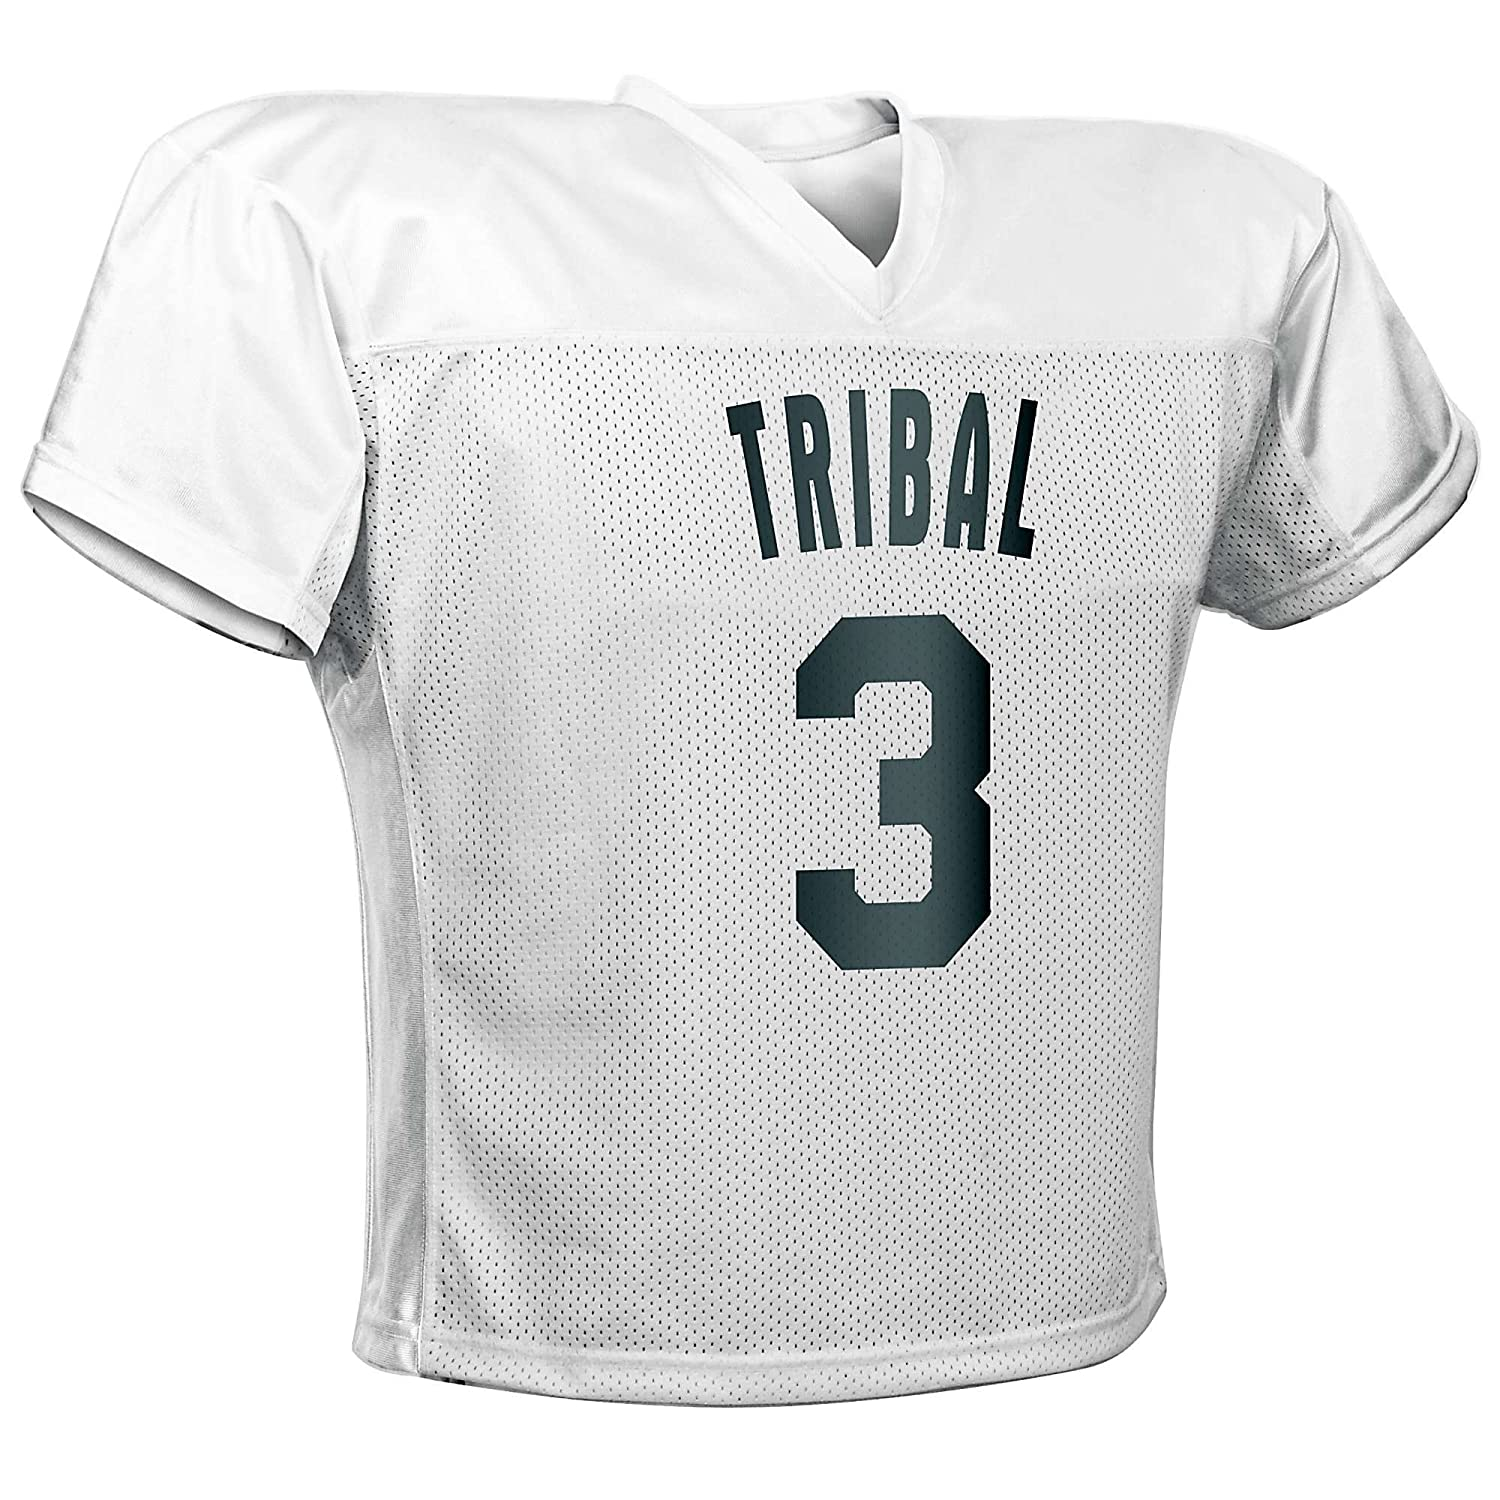 96a6350c8df Amazon.com : CHAMPRO Adult Tribal Football/Lacrosse Jersey : Clothing